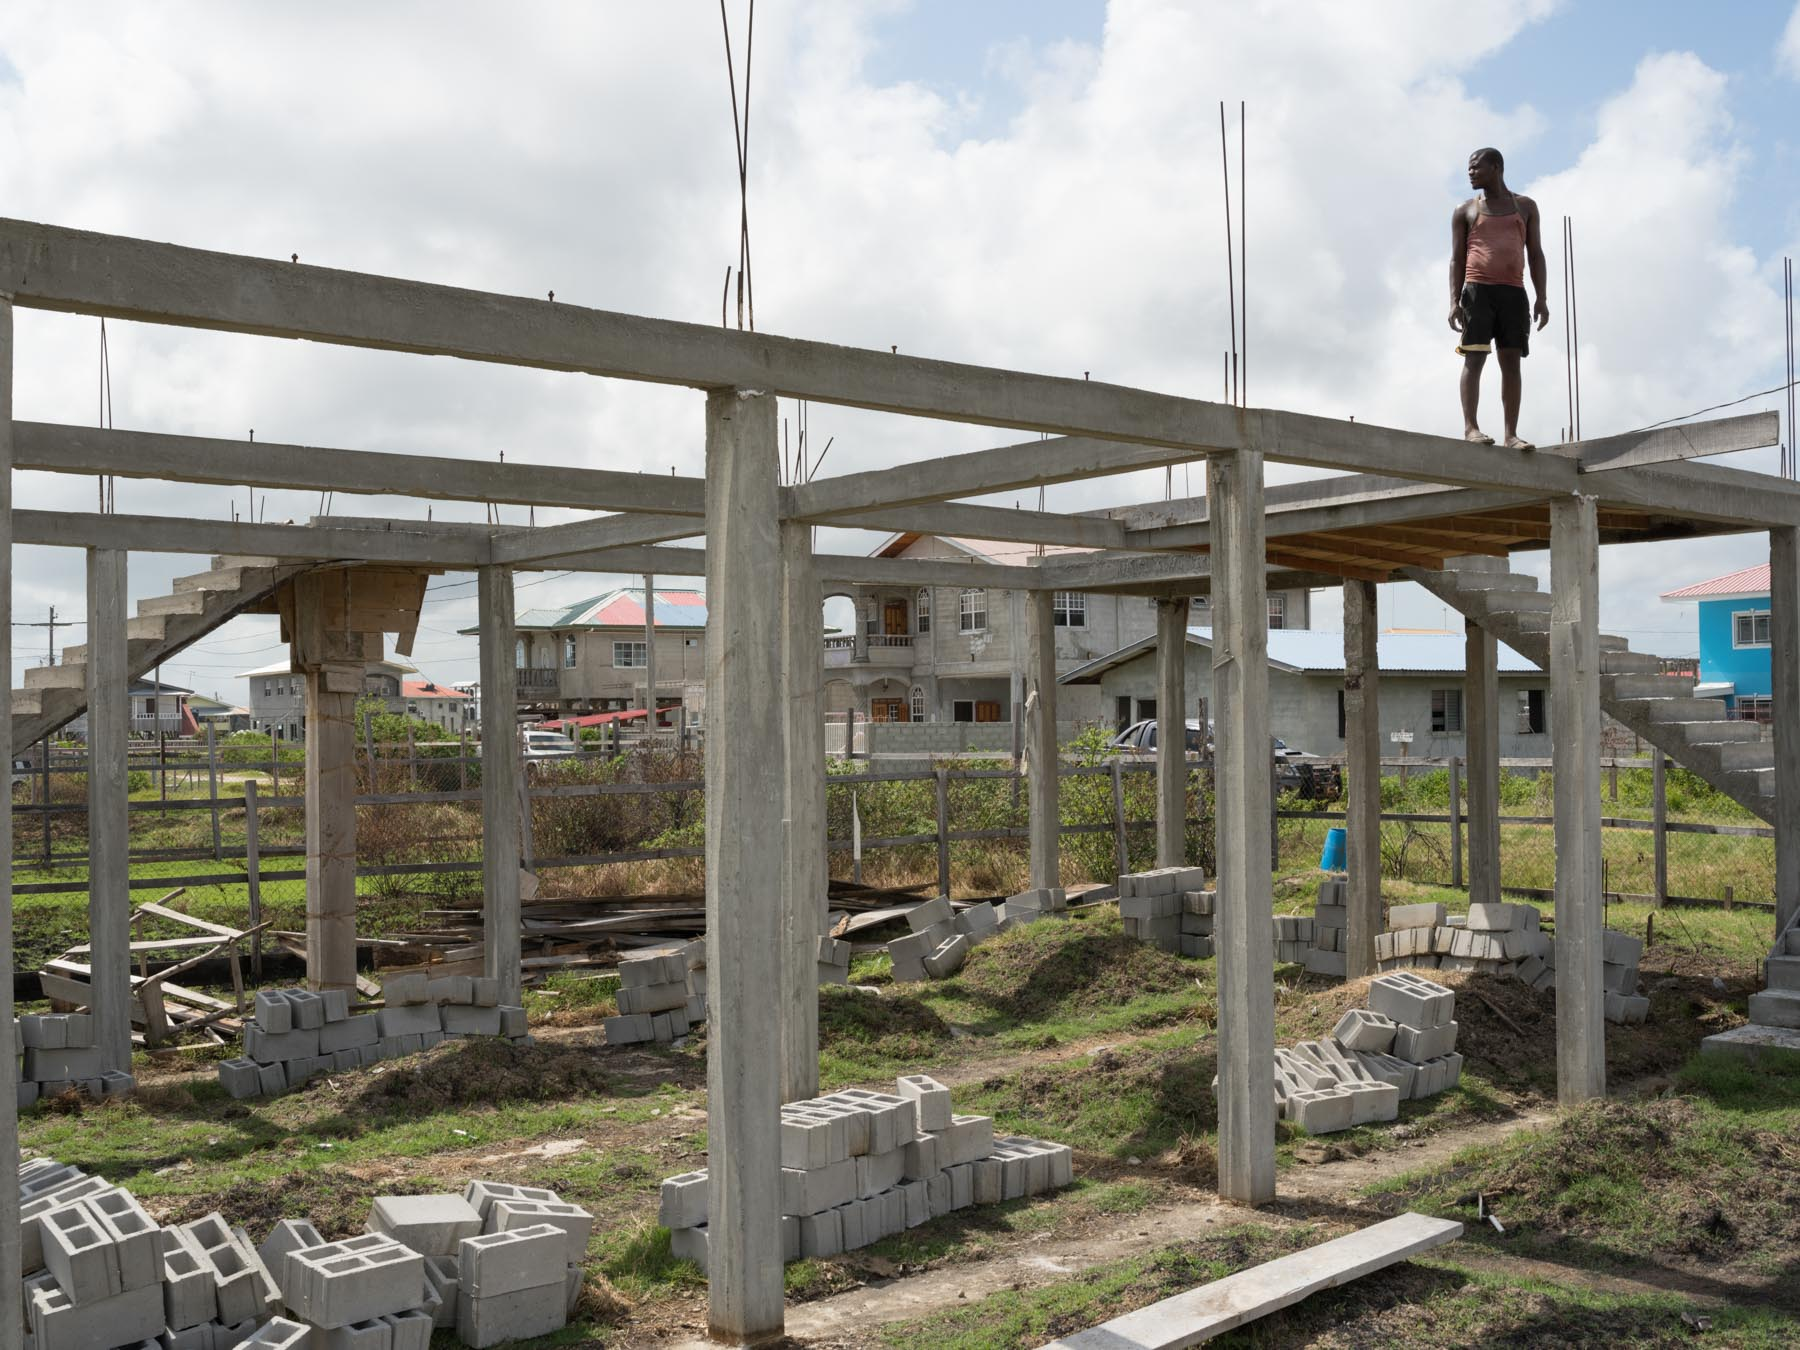 Near the sea wall in Georgetown, houses are built on stilts. The stilts protect residents from wild animals, and from high tides that crest over the flood walls. Orrin Harcourt builds a house near the coast, with the help of his son Leyland. (Photo: Lucas Foglia)